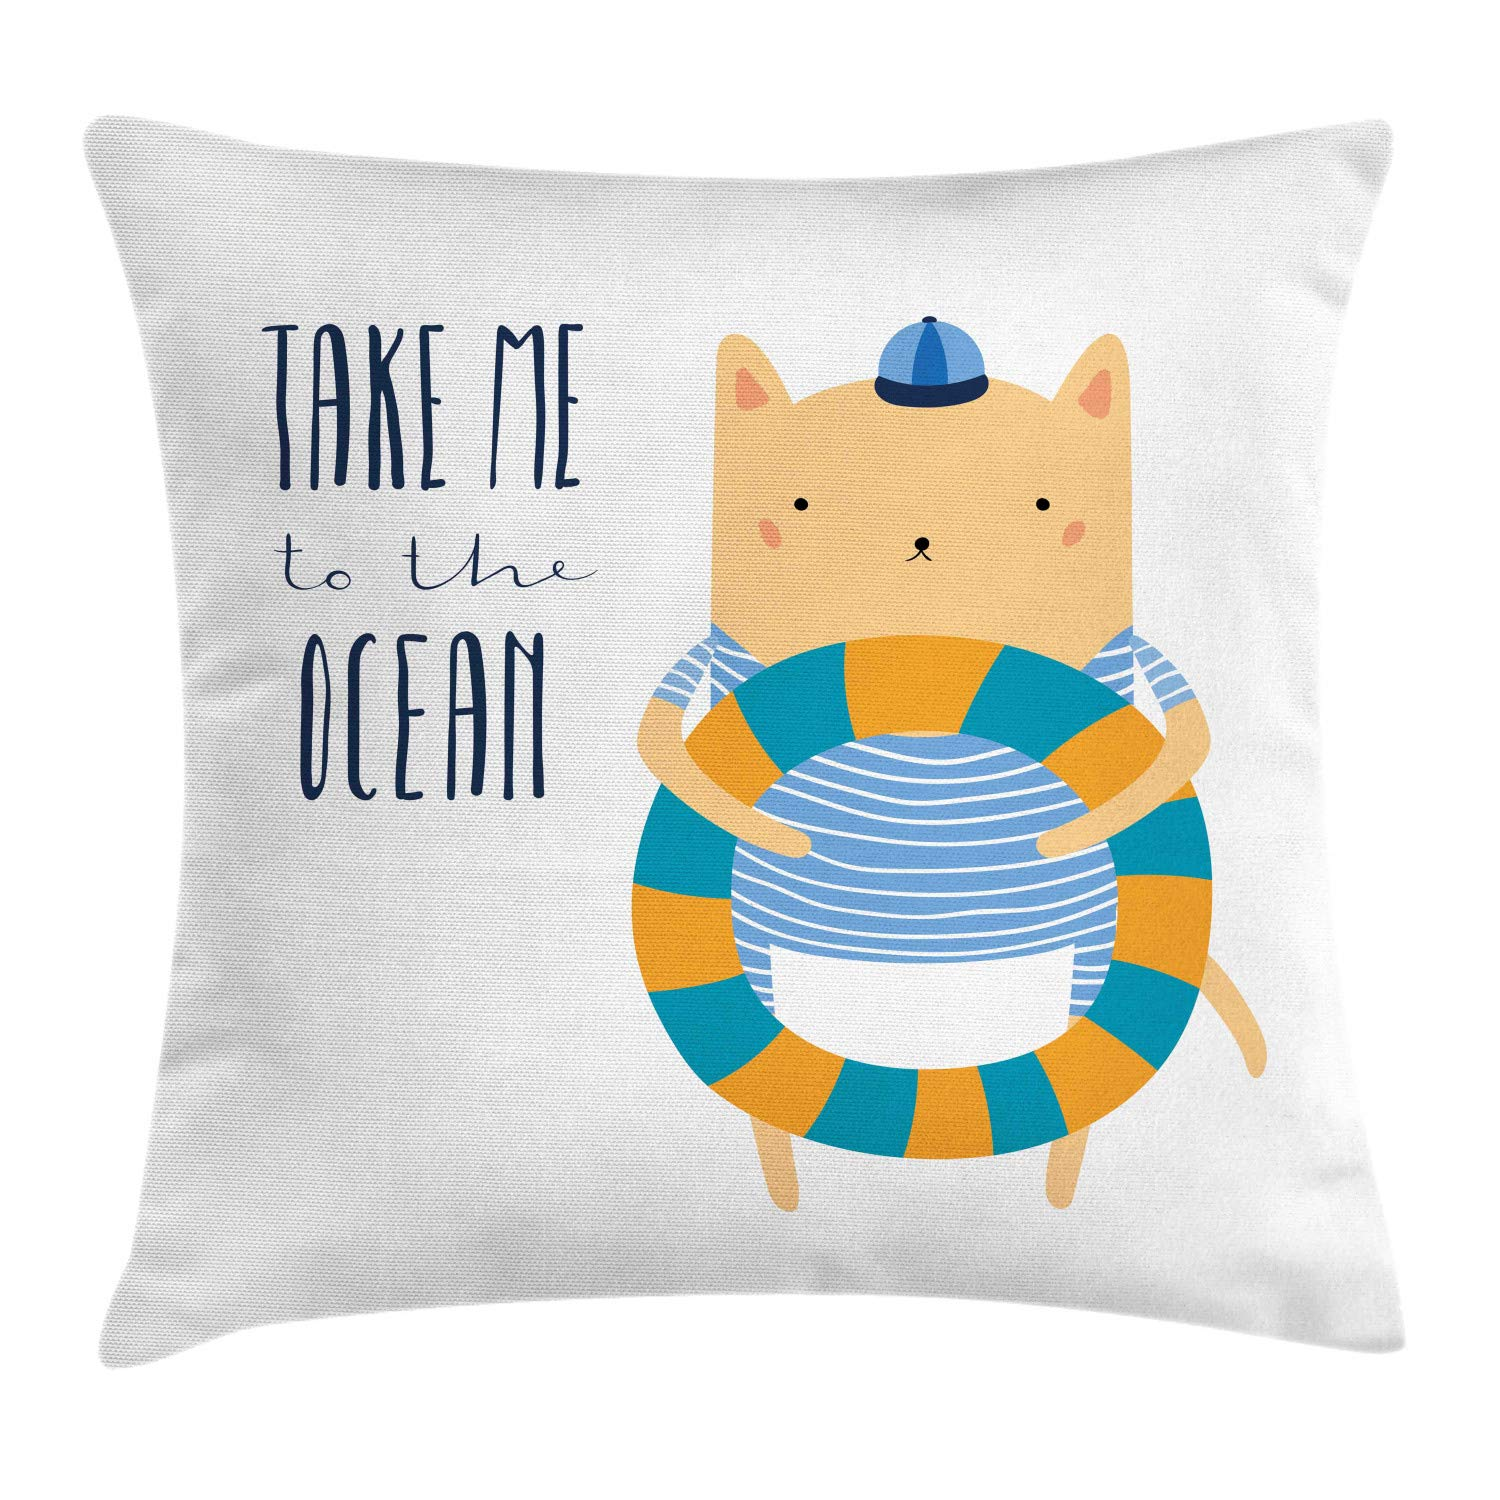 Lunarable Ocean Saying Throw Pillow Cushion Cover, Nursery Themed Cartoon Animal Character in Marine Clothes Take Me to The Ocean, Decorative Square Accent Pillow Case, 36'' X 36'', Multicolor by Lunarable